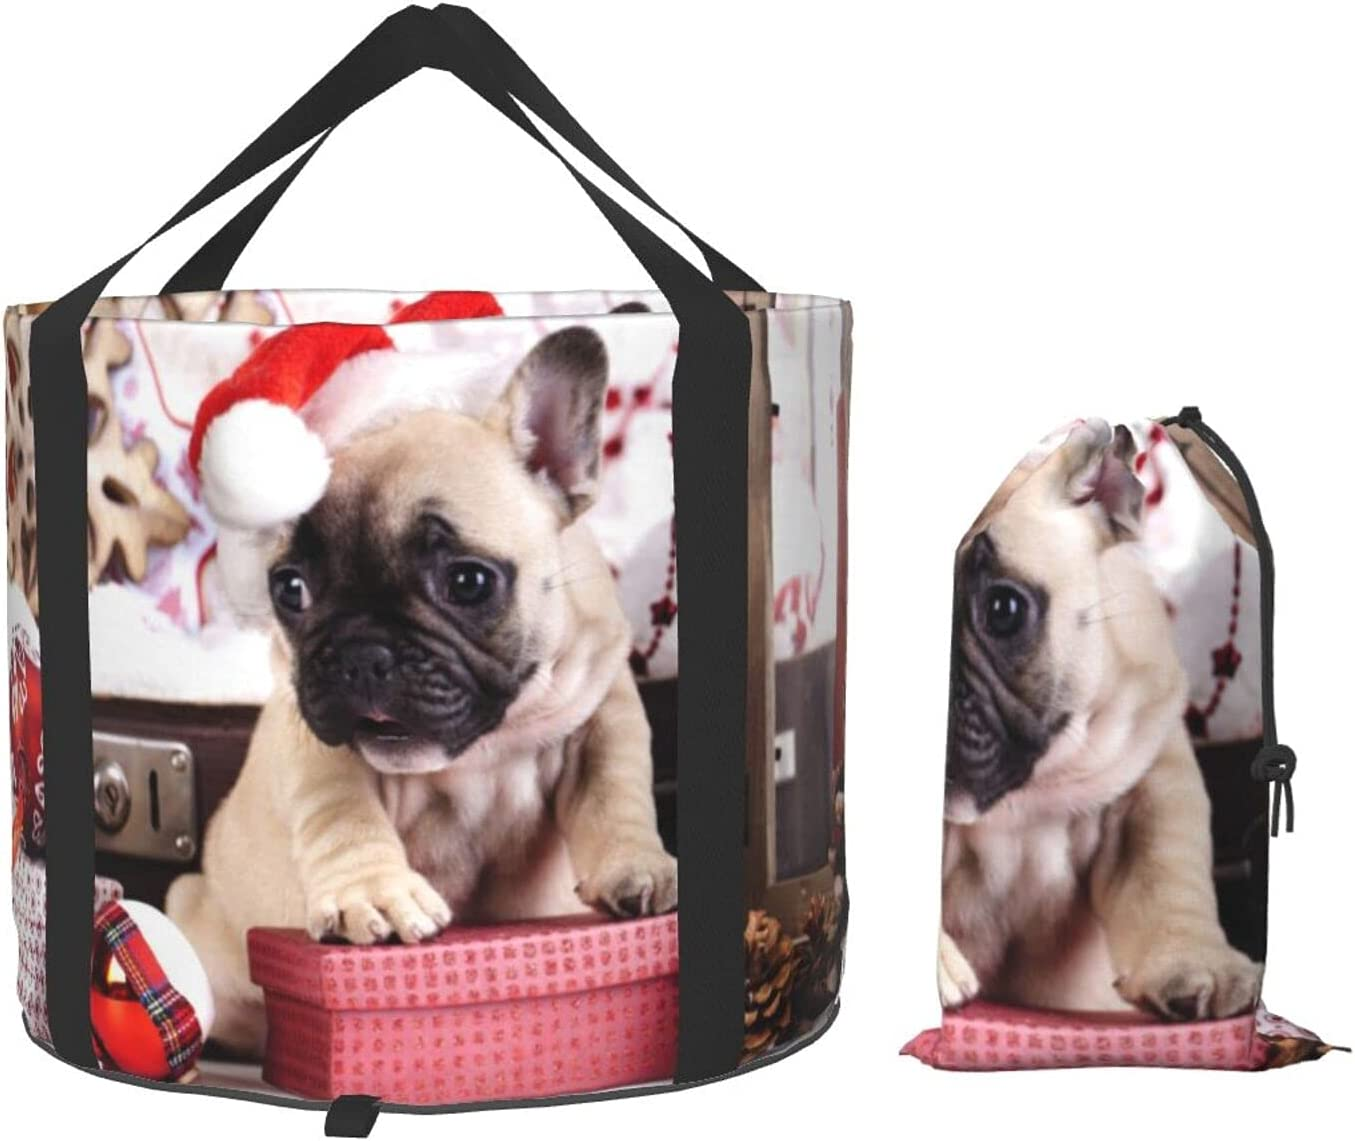 Dog Collapsible Bucket Multifunctional W Folding Purchase Portable OFFicial site